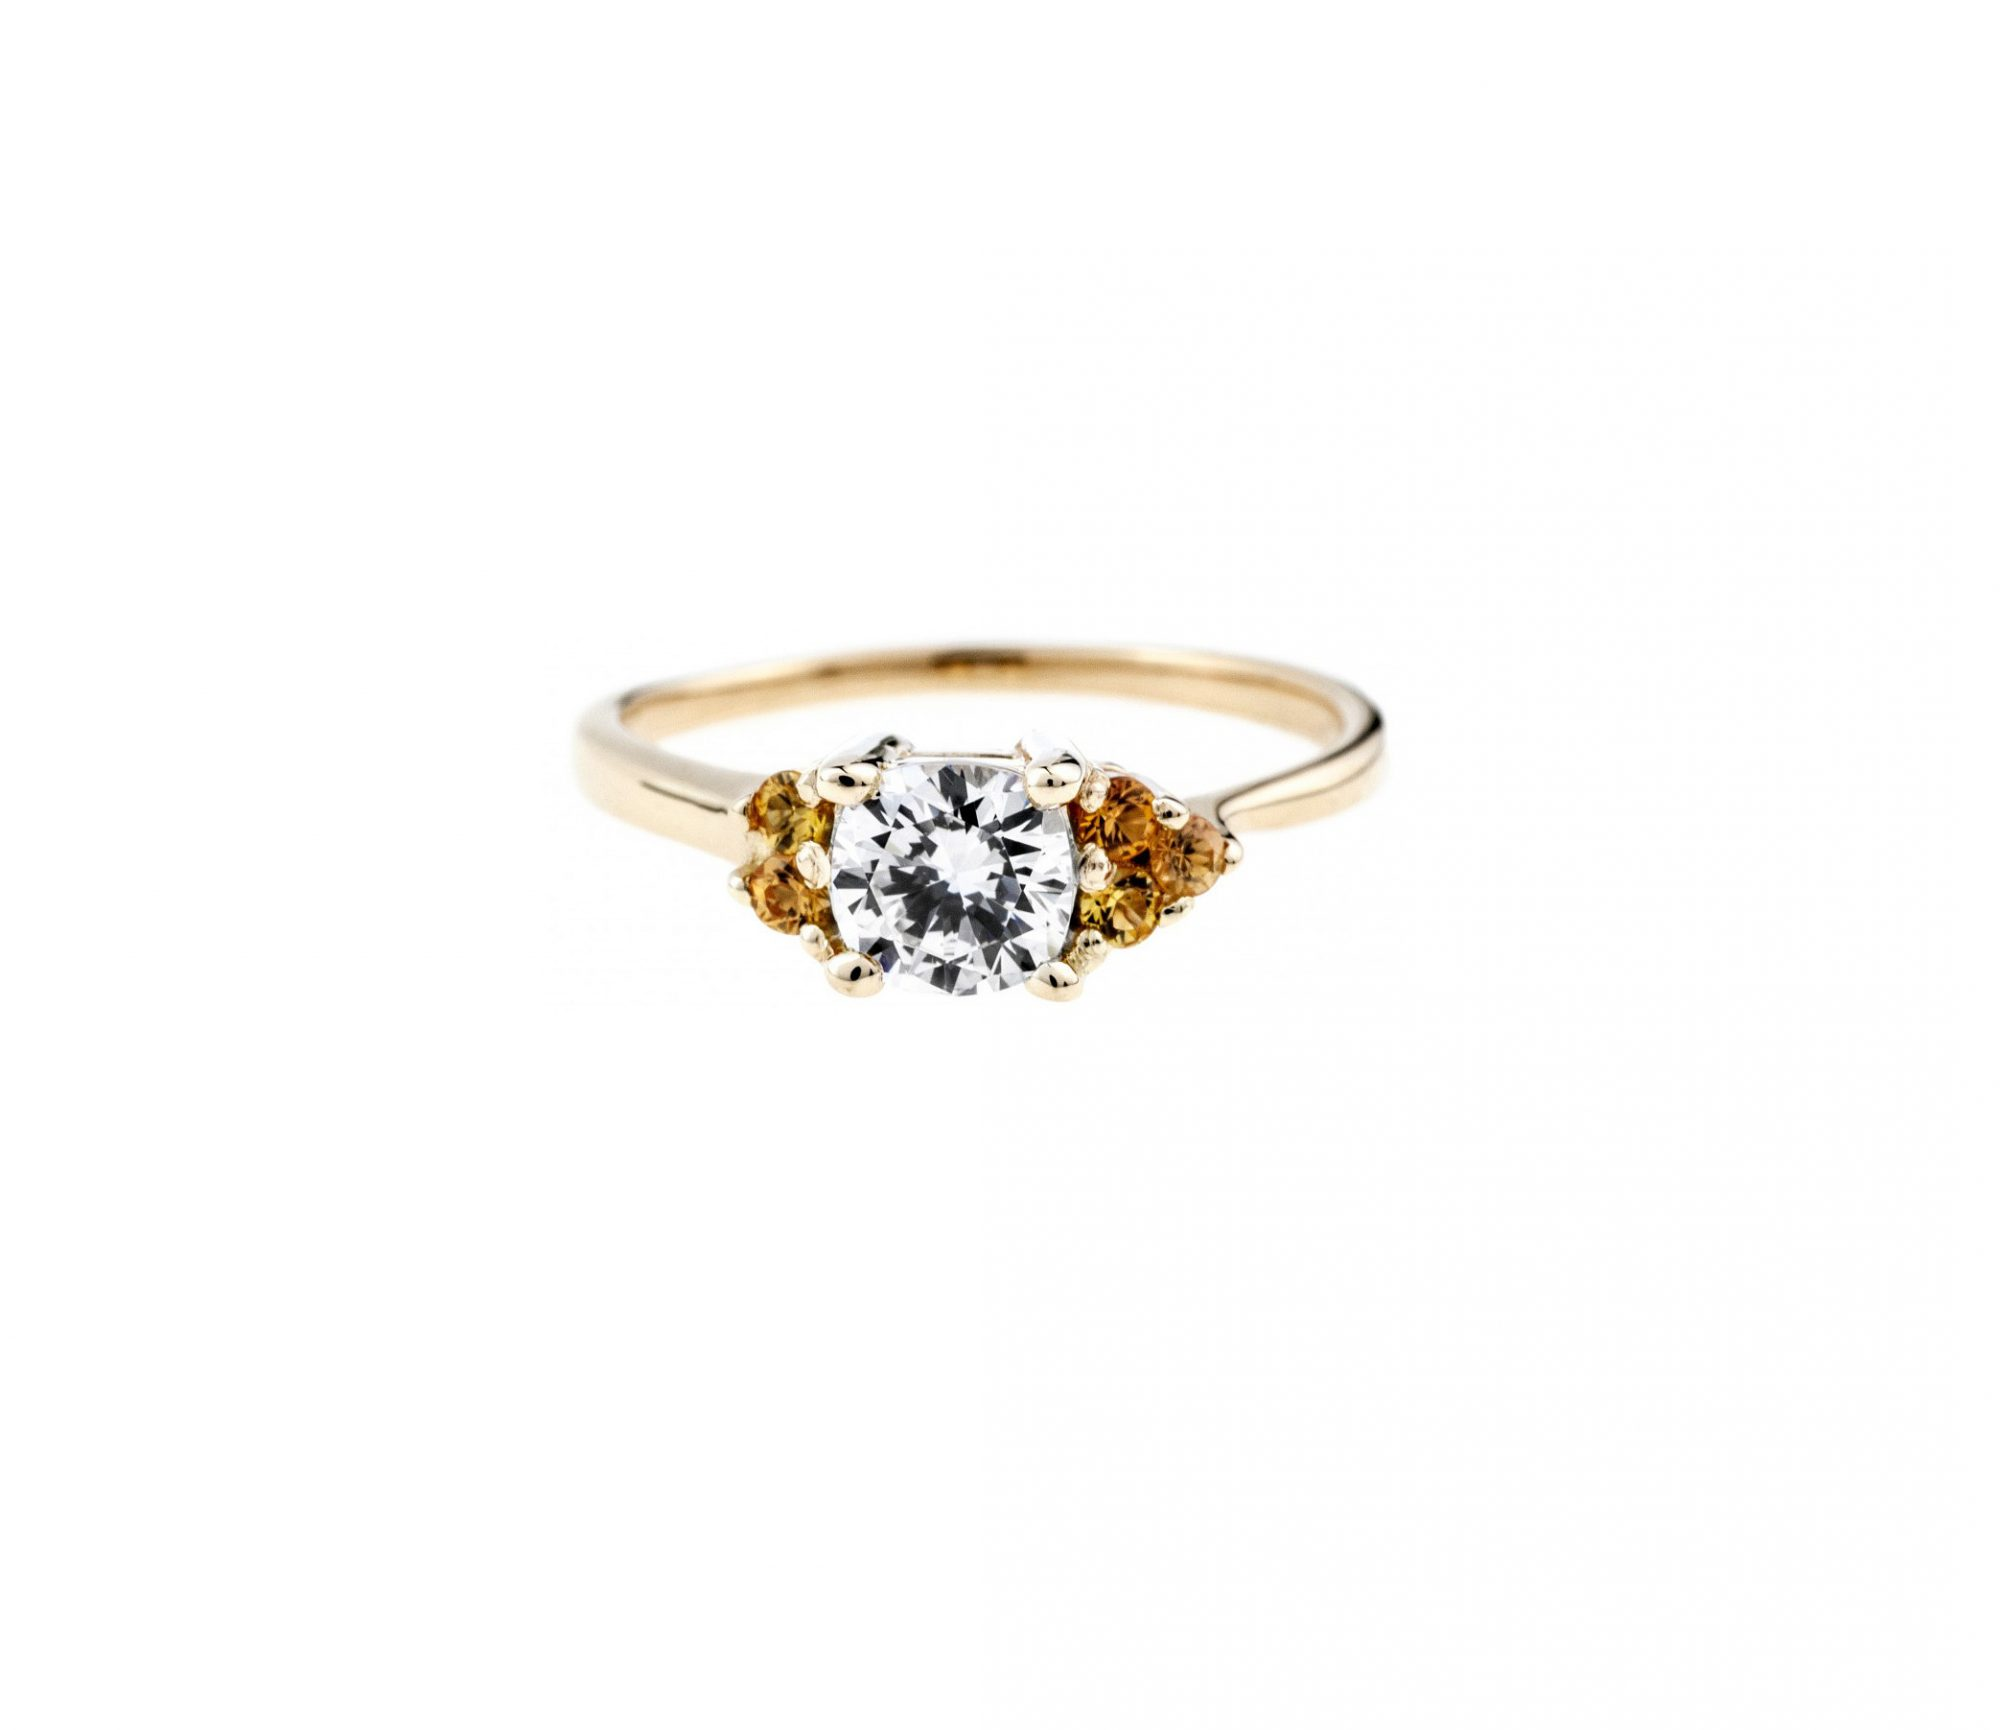 bario neal avens asymmetrical cushion cut engagement ring